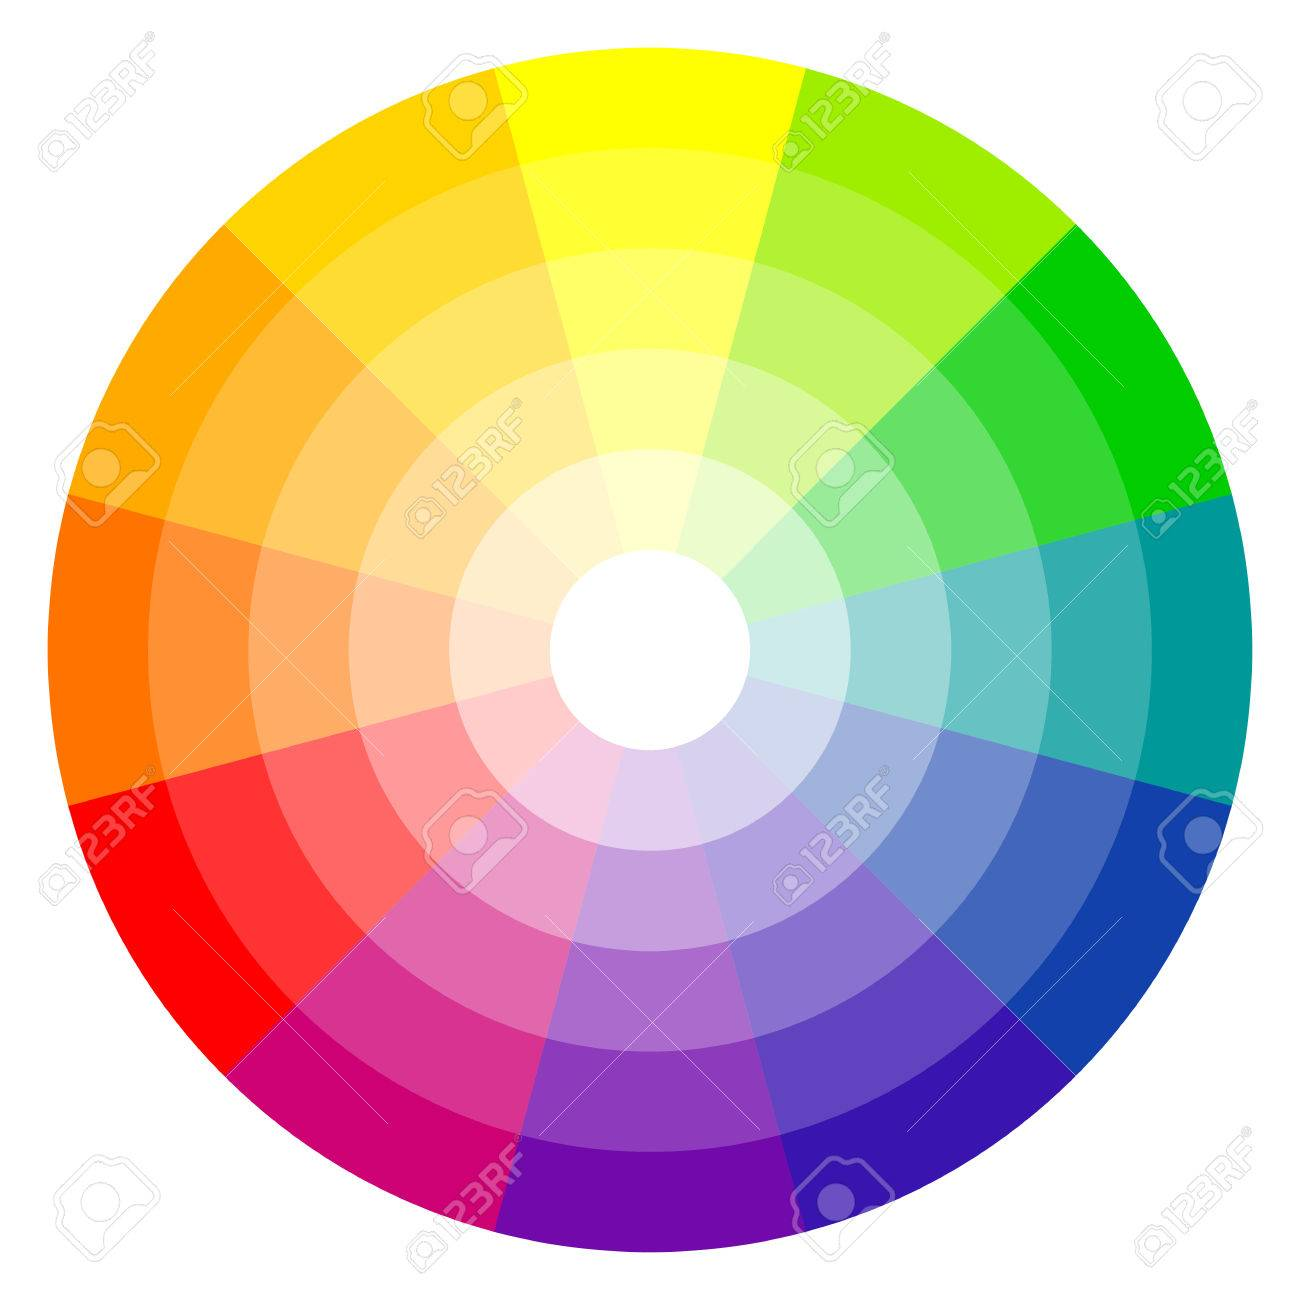 Illustration Of Printing Color Wheel With Twelve Colors In Gradations Stock Vector